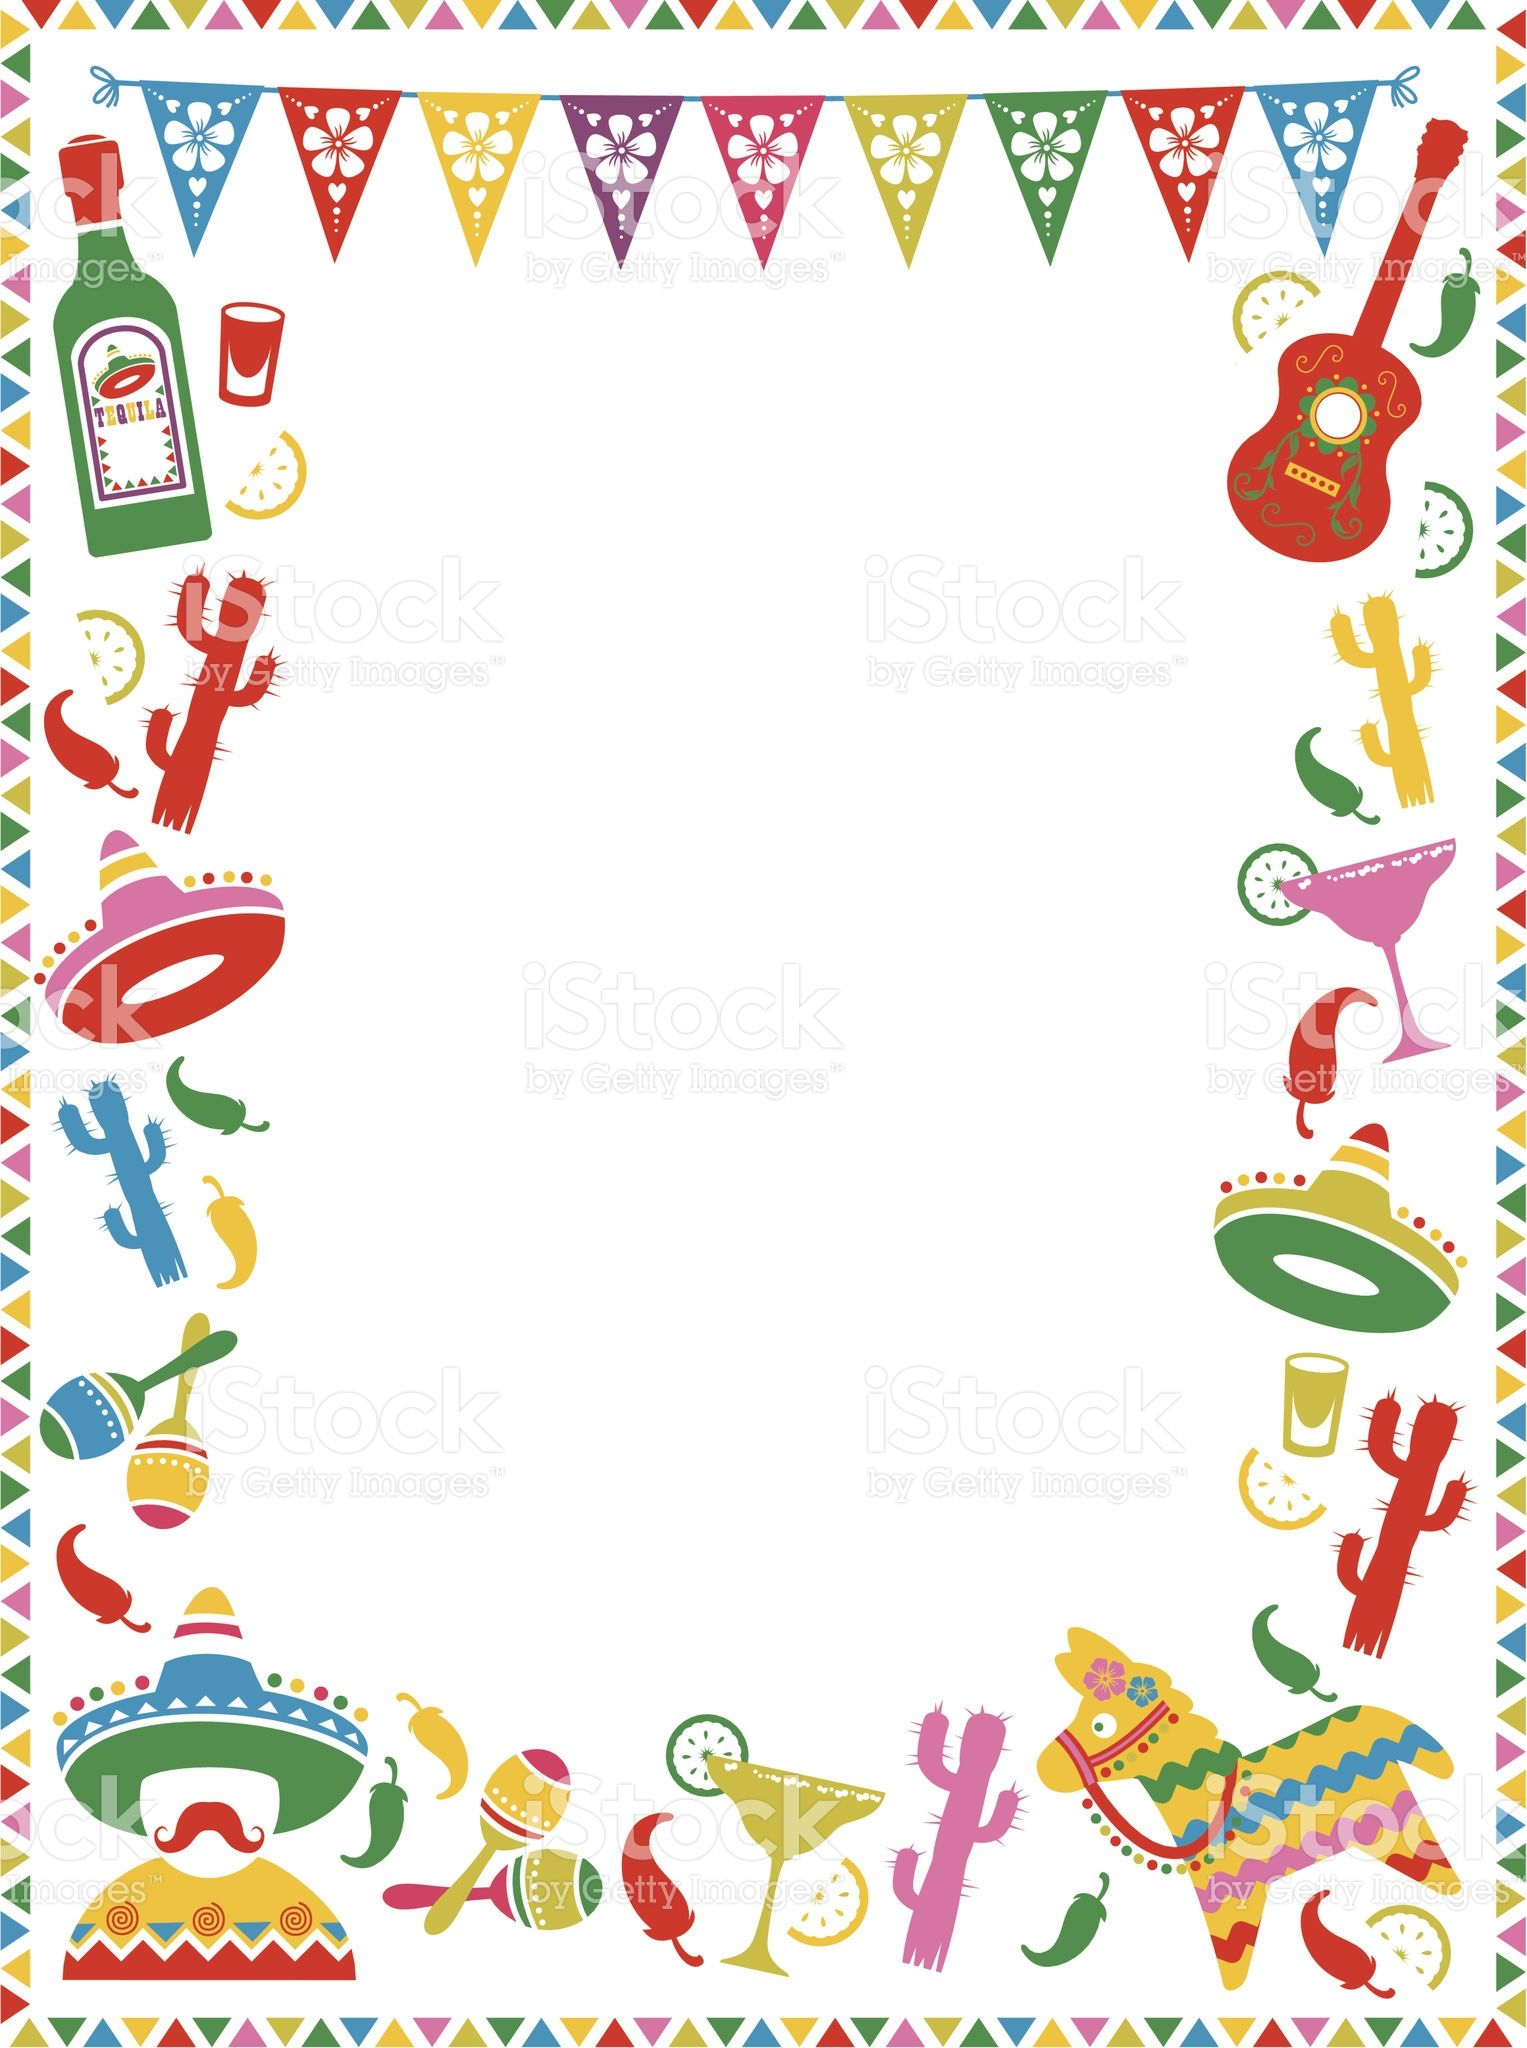 A mexican themed border ideal for menus or party invites see below mexican party frame royalty free stock vector art stopboris Image collections